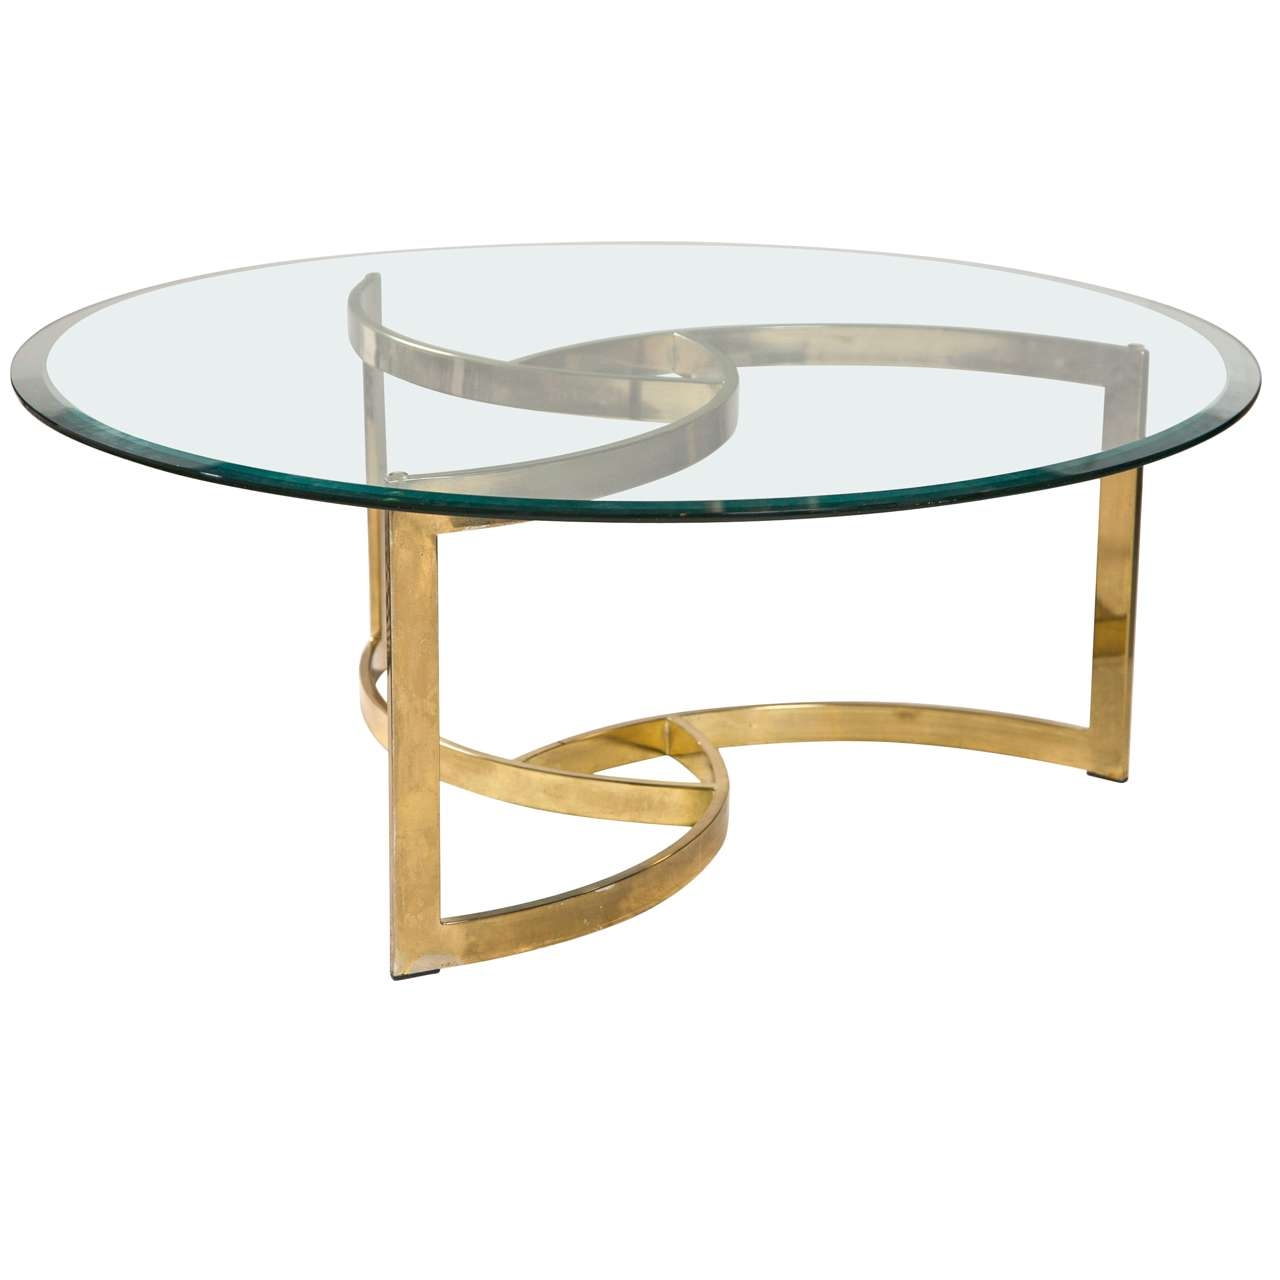 Coffee Table : Small Round Glass Coffee Table Unique Simple Glass Intended For Most Up To Date Simple Glass Coffee Tables (View 12 of 20)